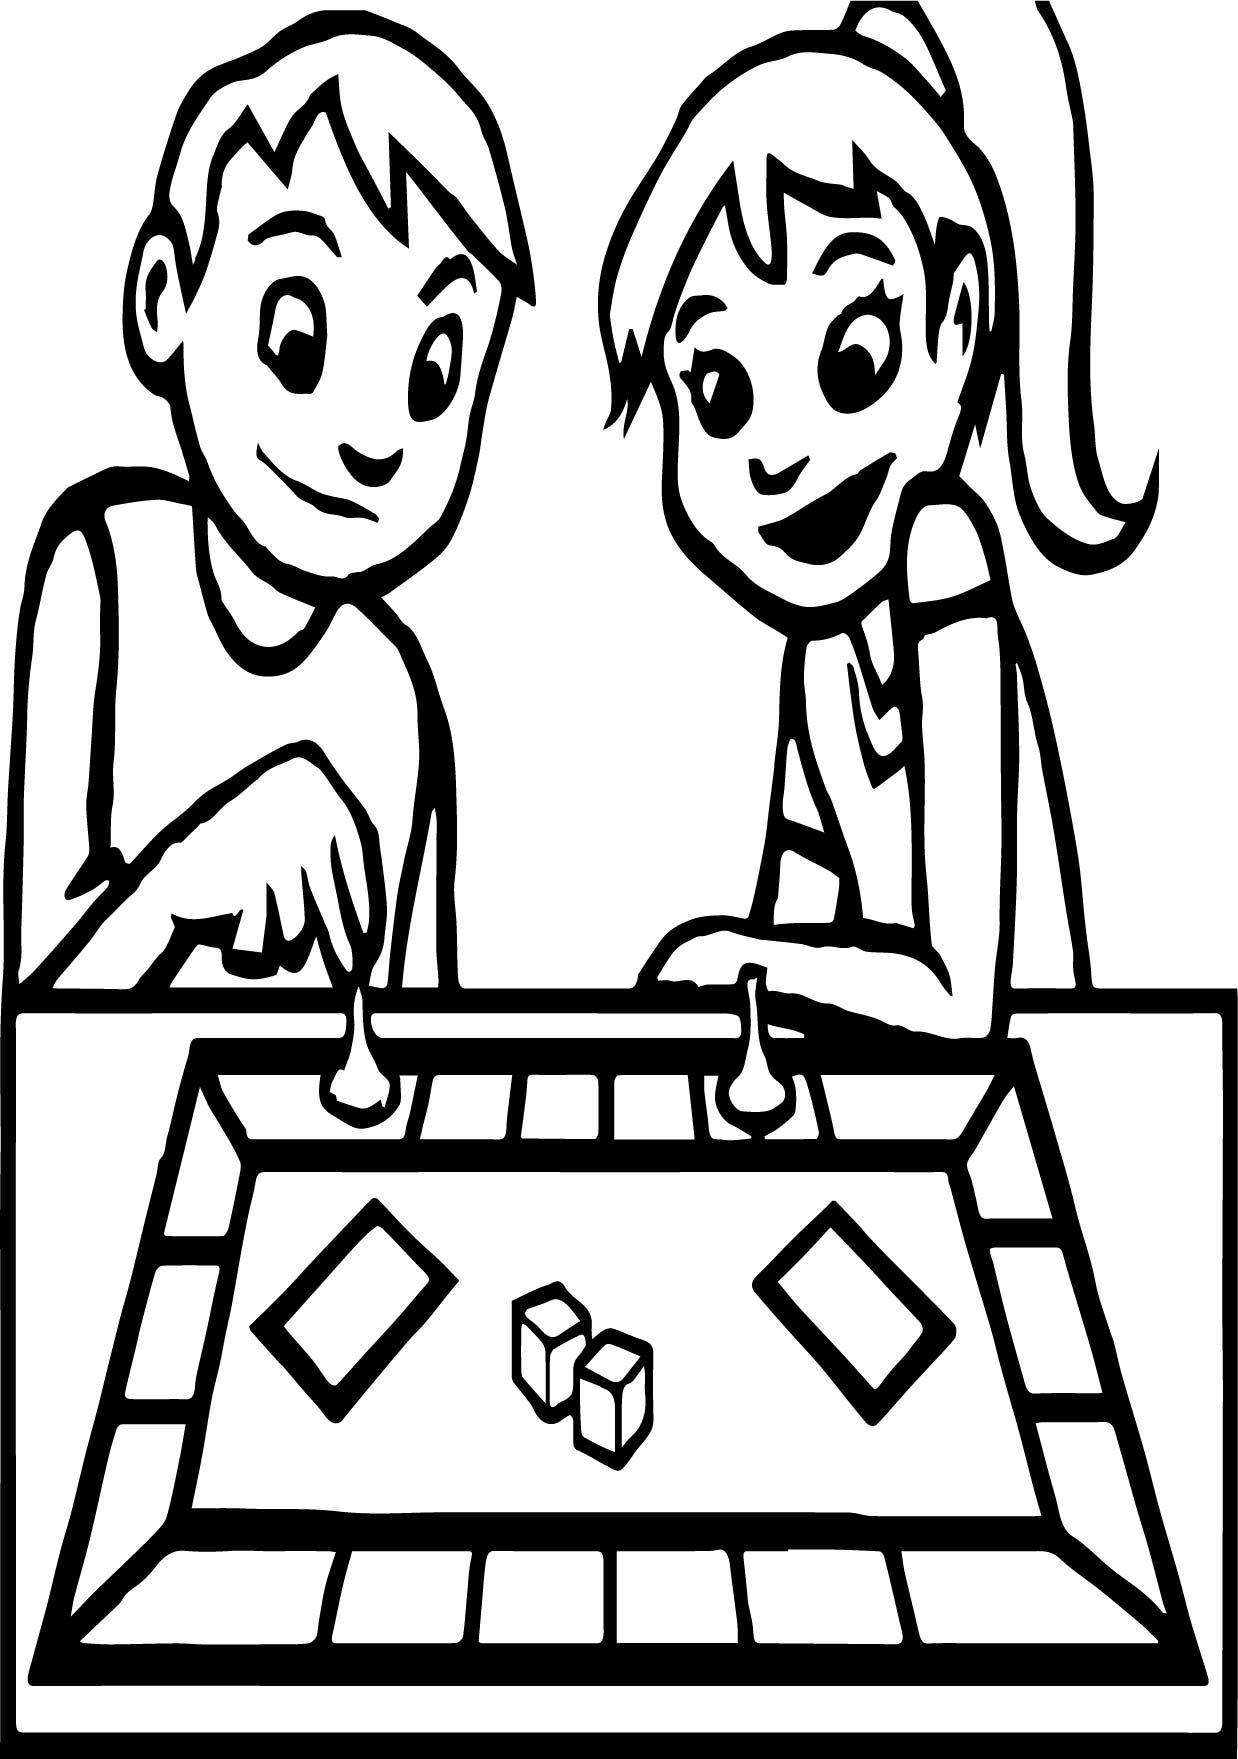 cool Board Game Boy And Girl Coloring Page Free online